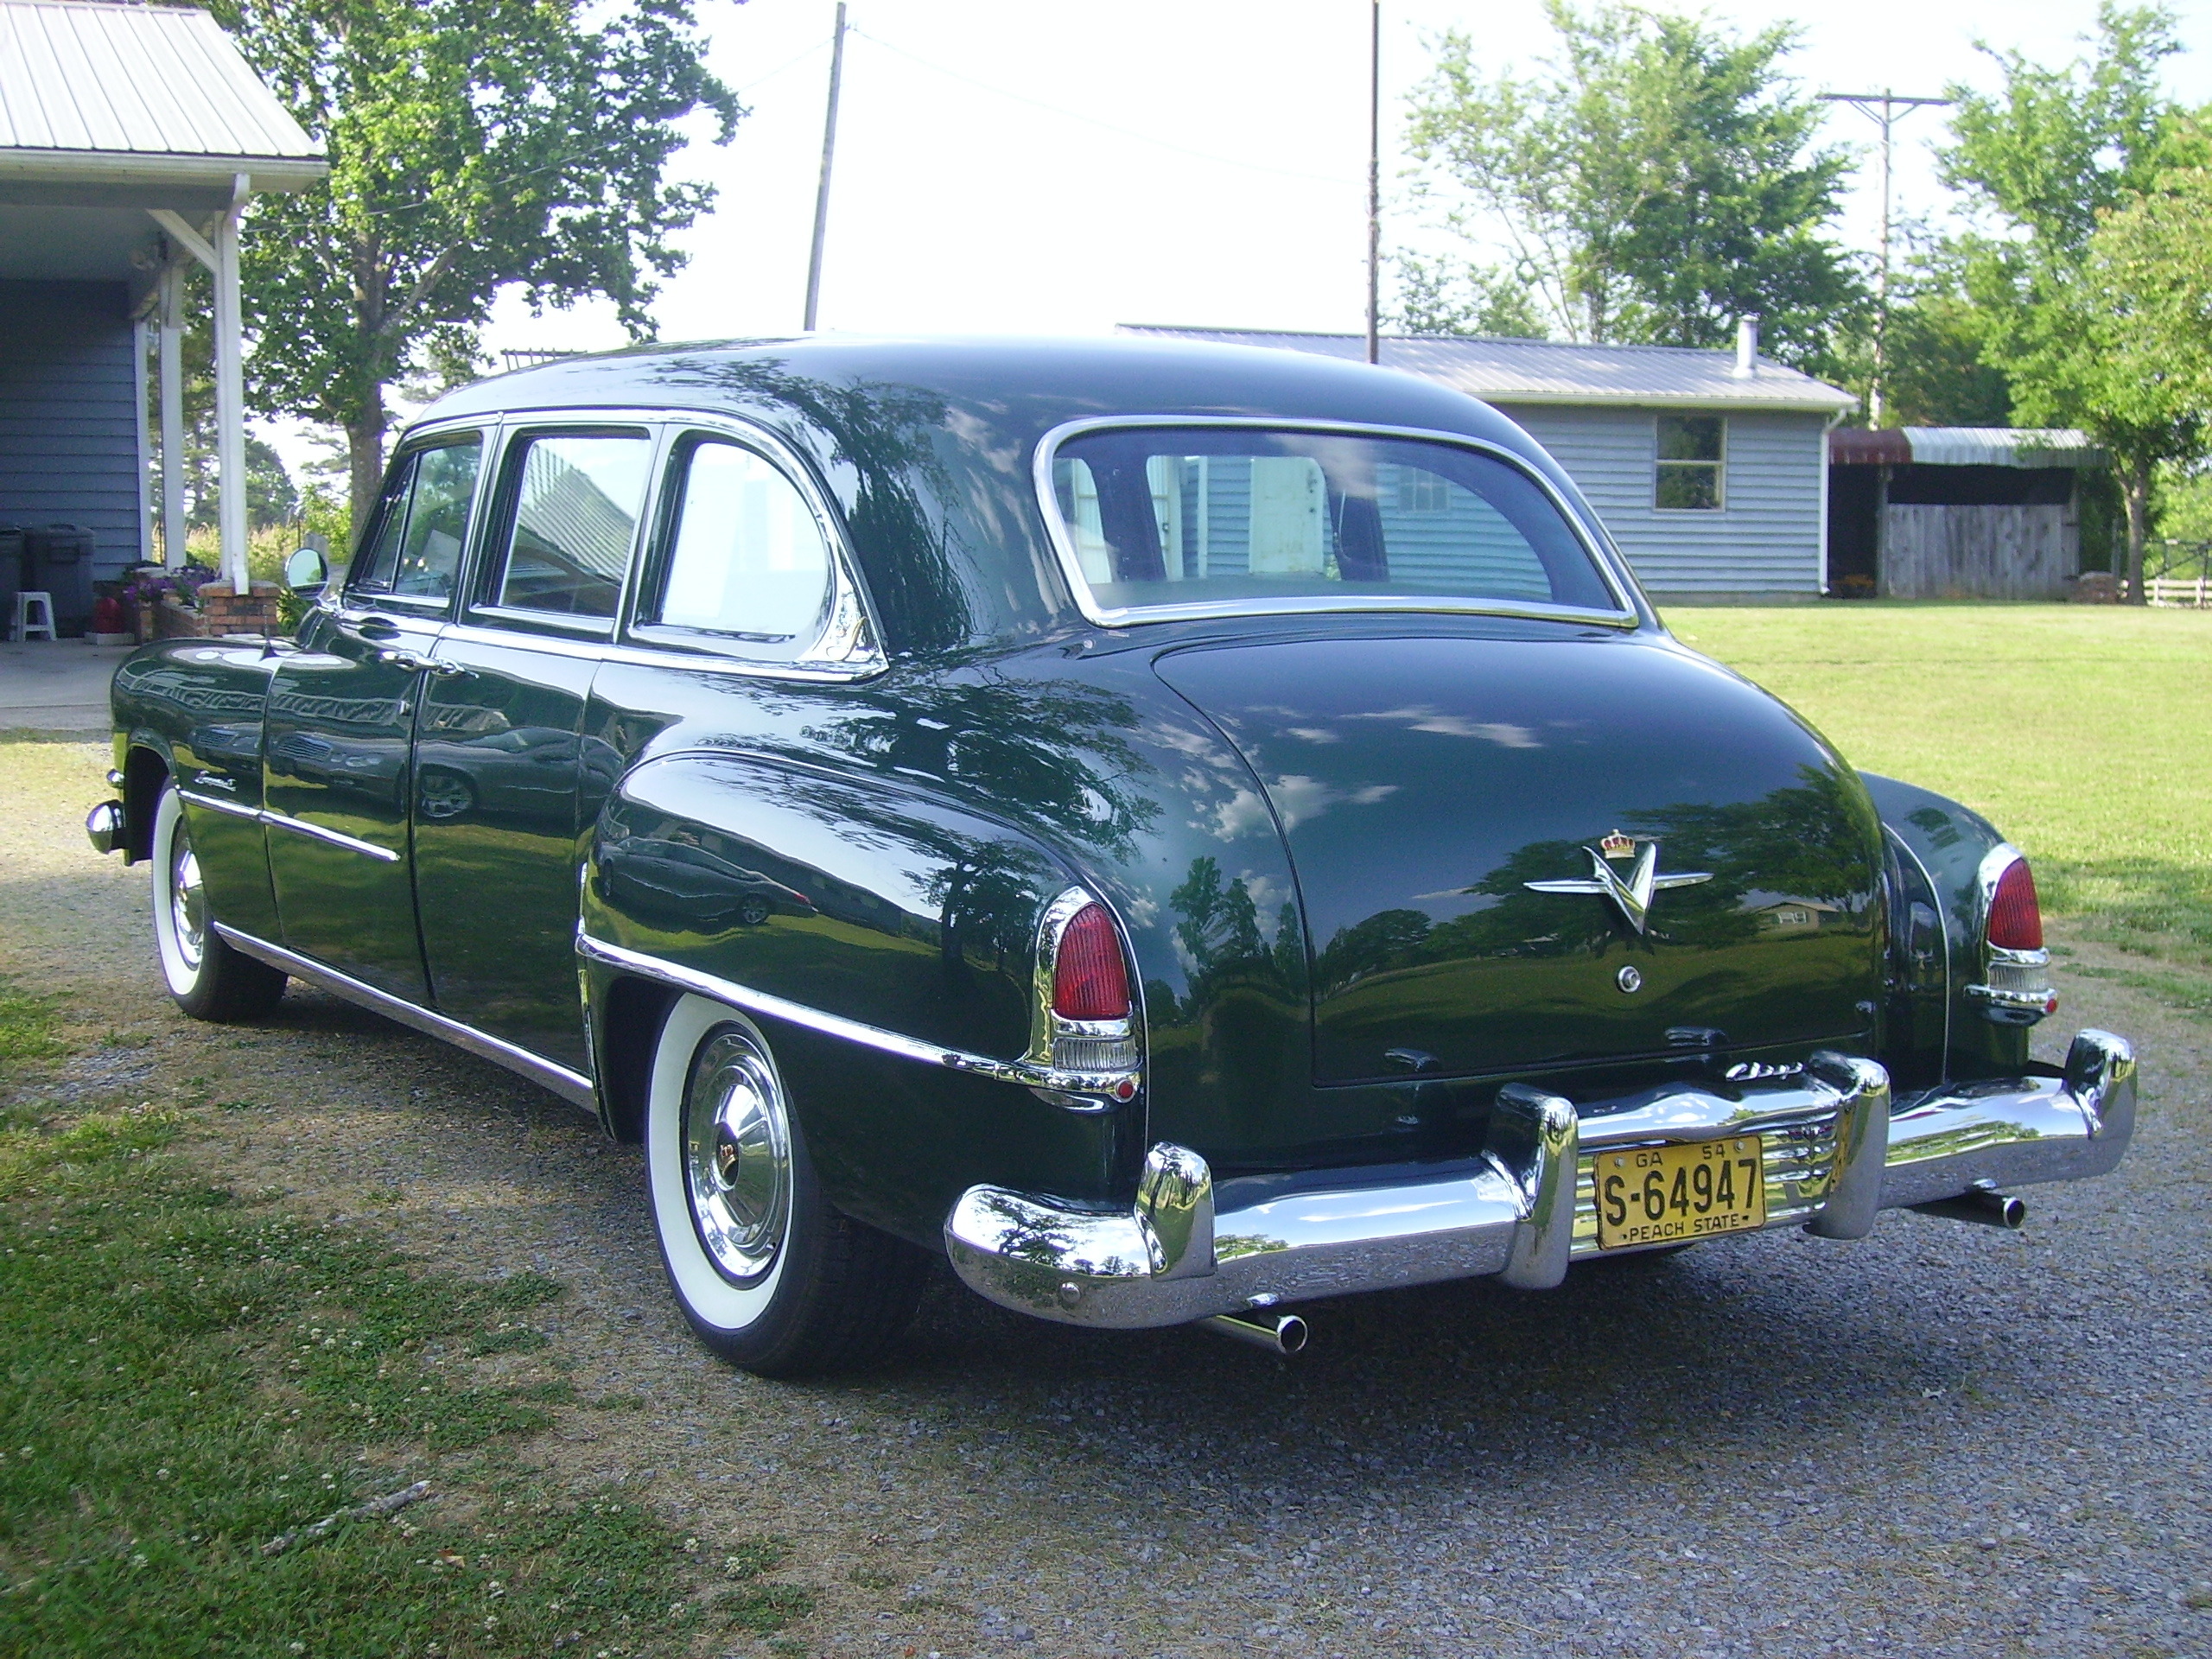 1954 Chrysler Crown Imperial The Widest Production Car Ever Electric Window Lifts Wiring Diagram For 1955 Studebaker Passenger Cars All Models Except 4 Door Sedans Http Kilbeysclassicscom Wp Content Uploads 2013 11 57 Sedan